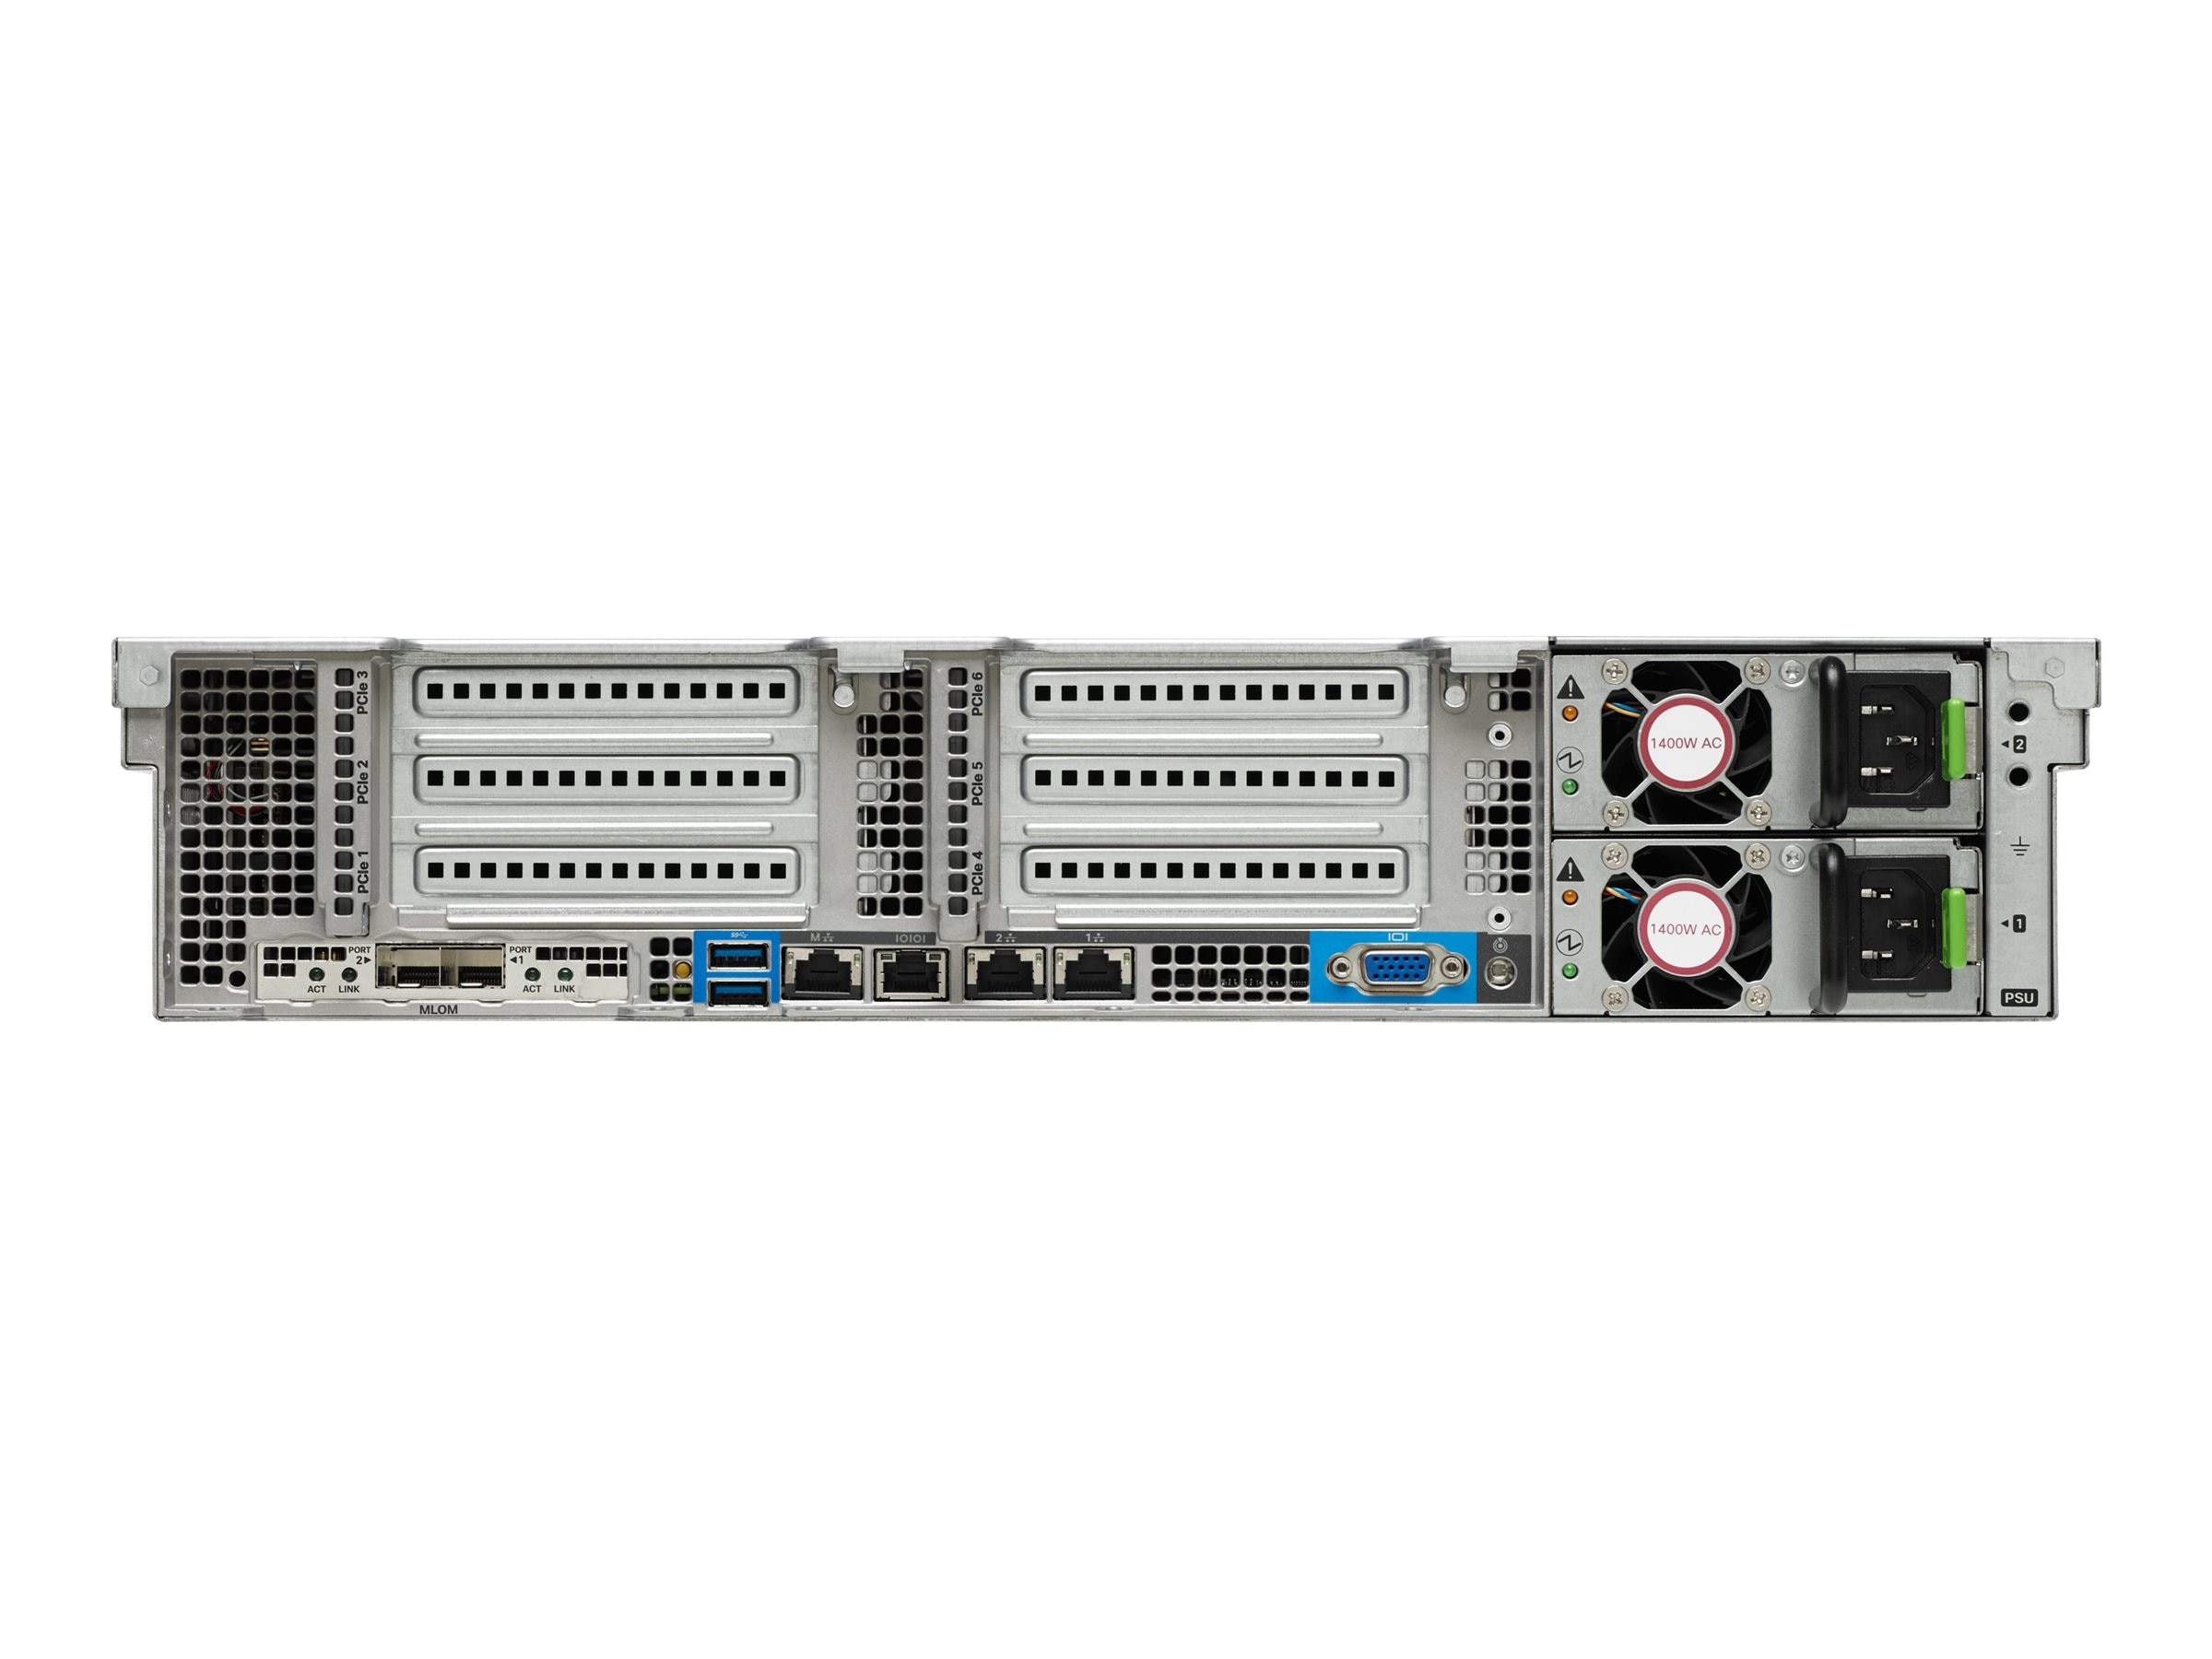 Cisco UCS-SPR-C240M4-BS1 Image 5